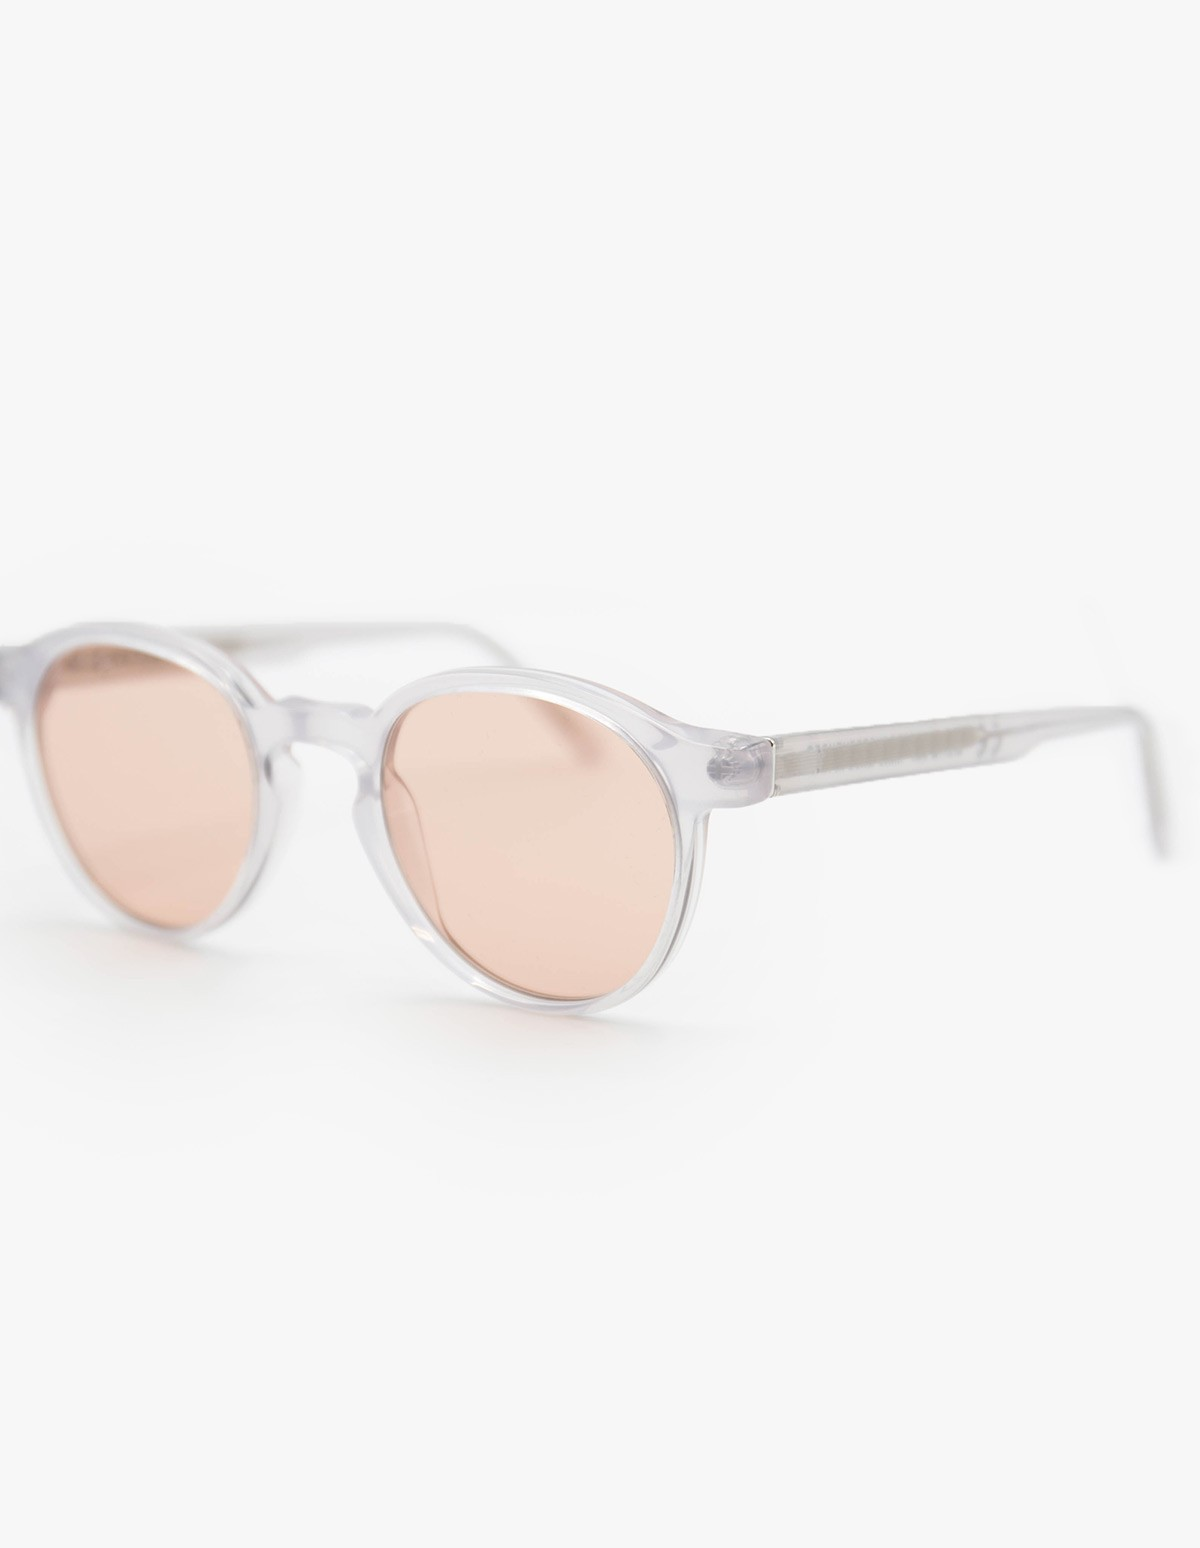 Retrosuperfuture Andy Warhol The Iconic Series Sunglasses in Crystal Grey